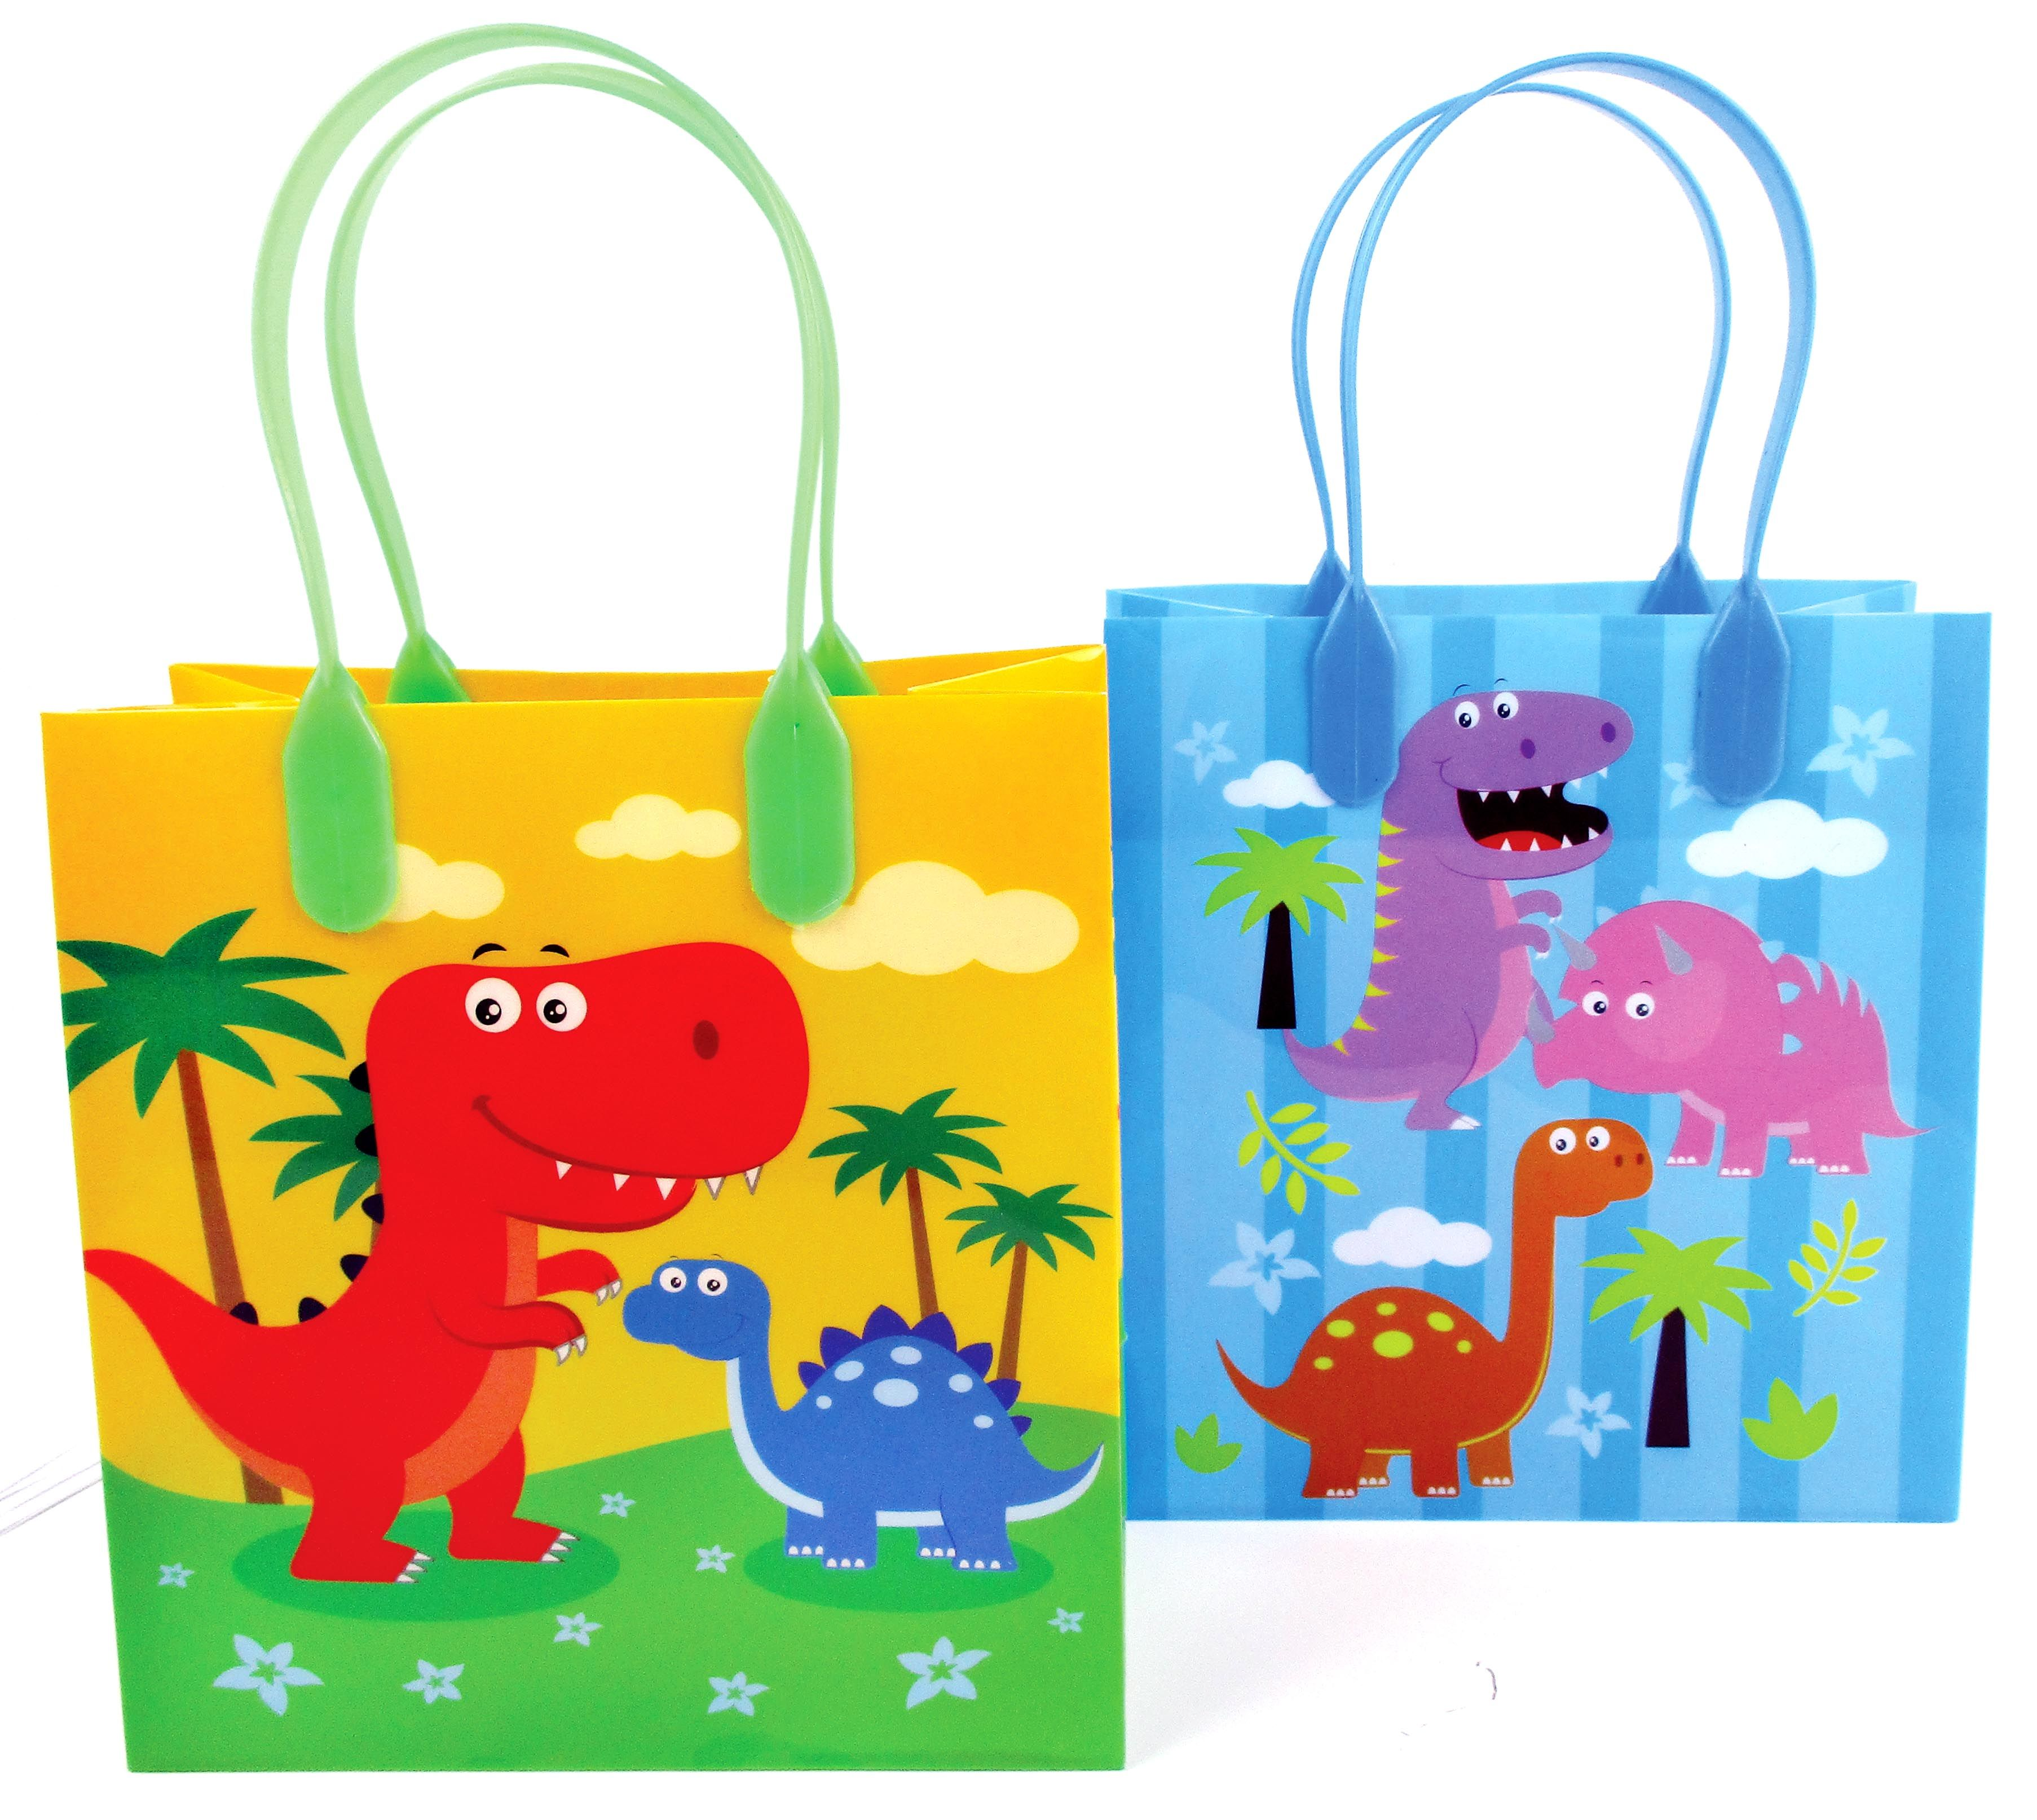 Dinosaur Party Favor Bags Treat Bags Set Of 6 Or 12 Dinosaur Party Favors Dinosaur Party Party Favor Bags